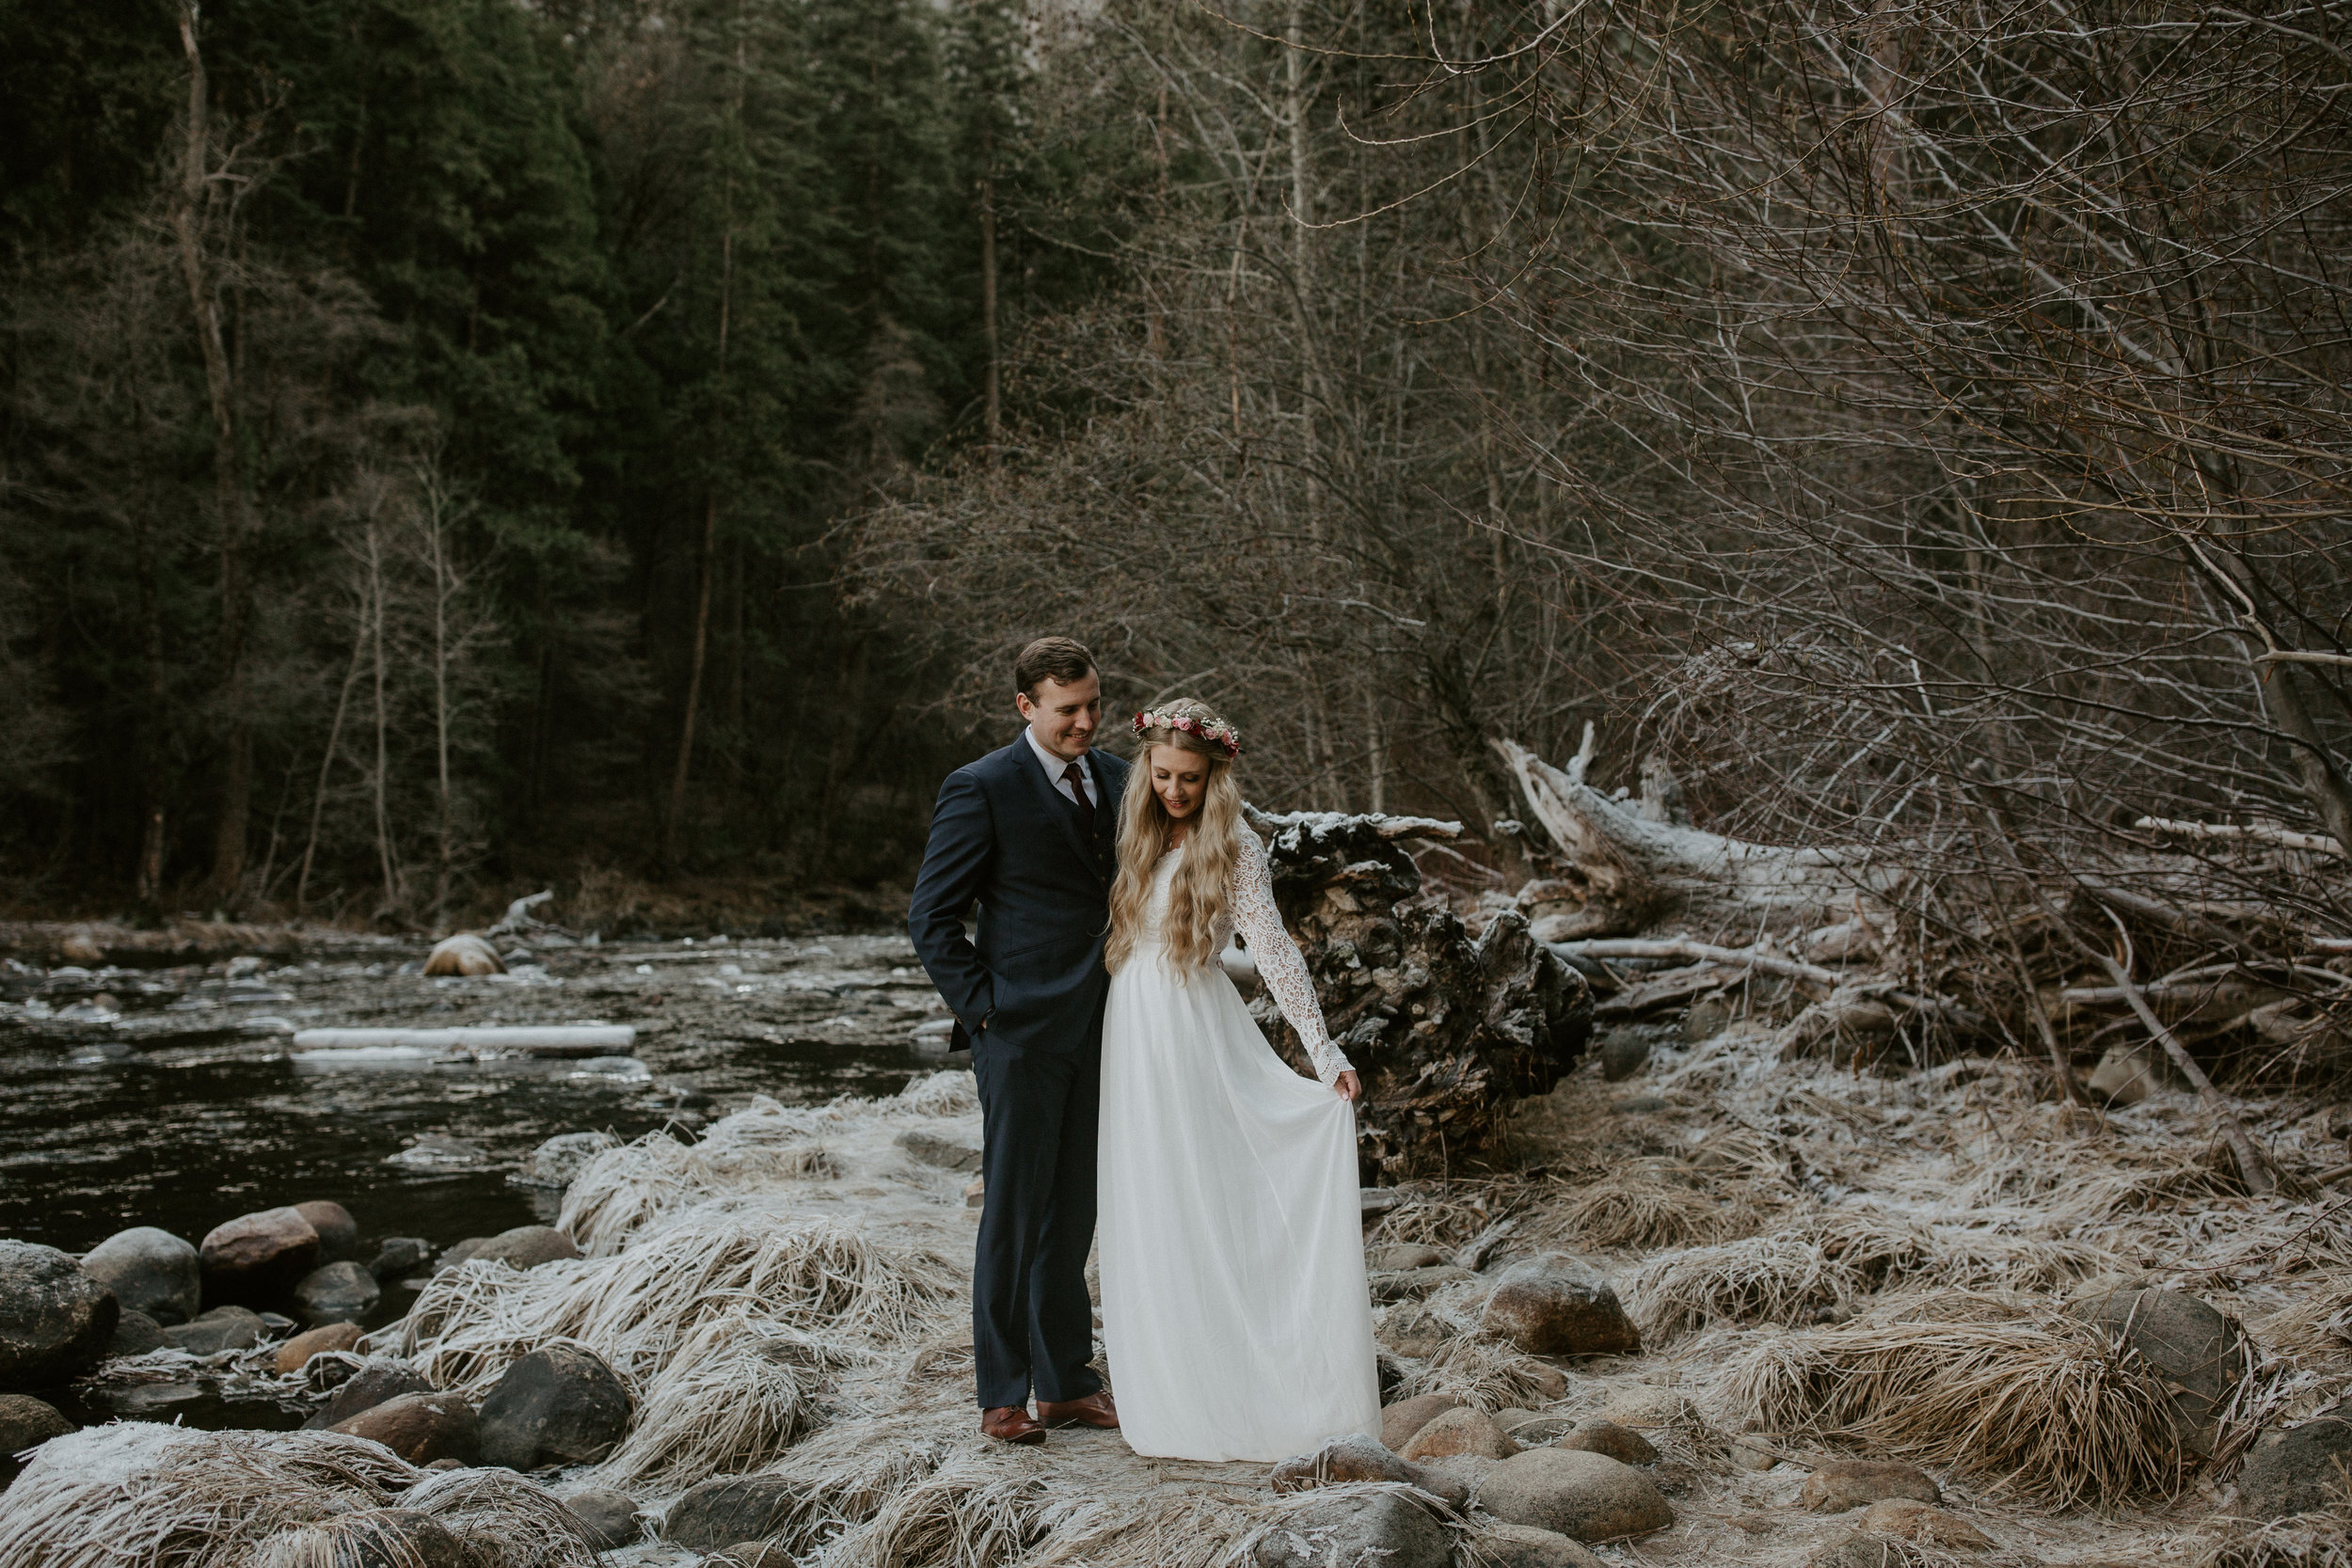 Celia + Will Yosemite Elopement-201.jpg